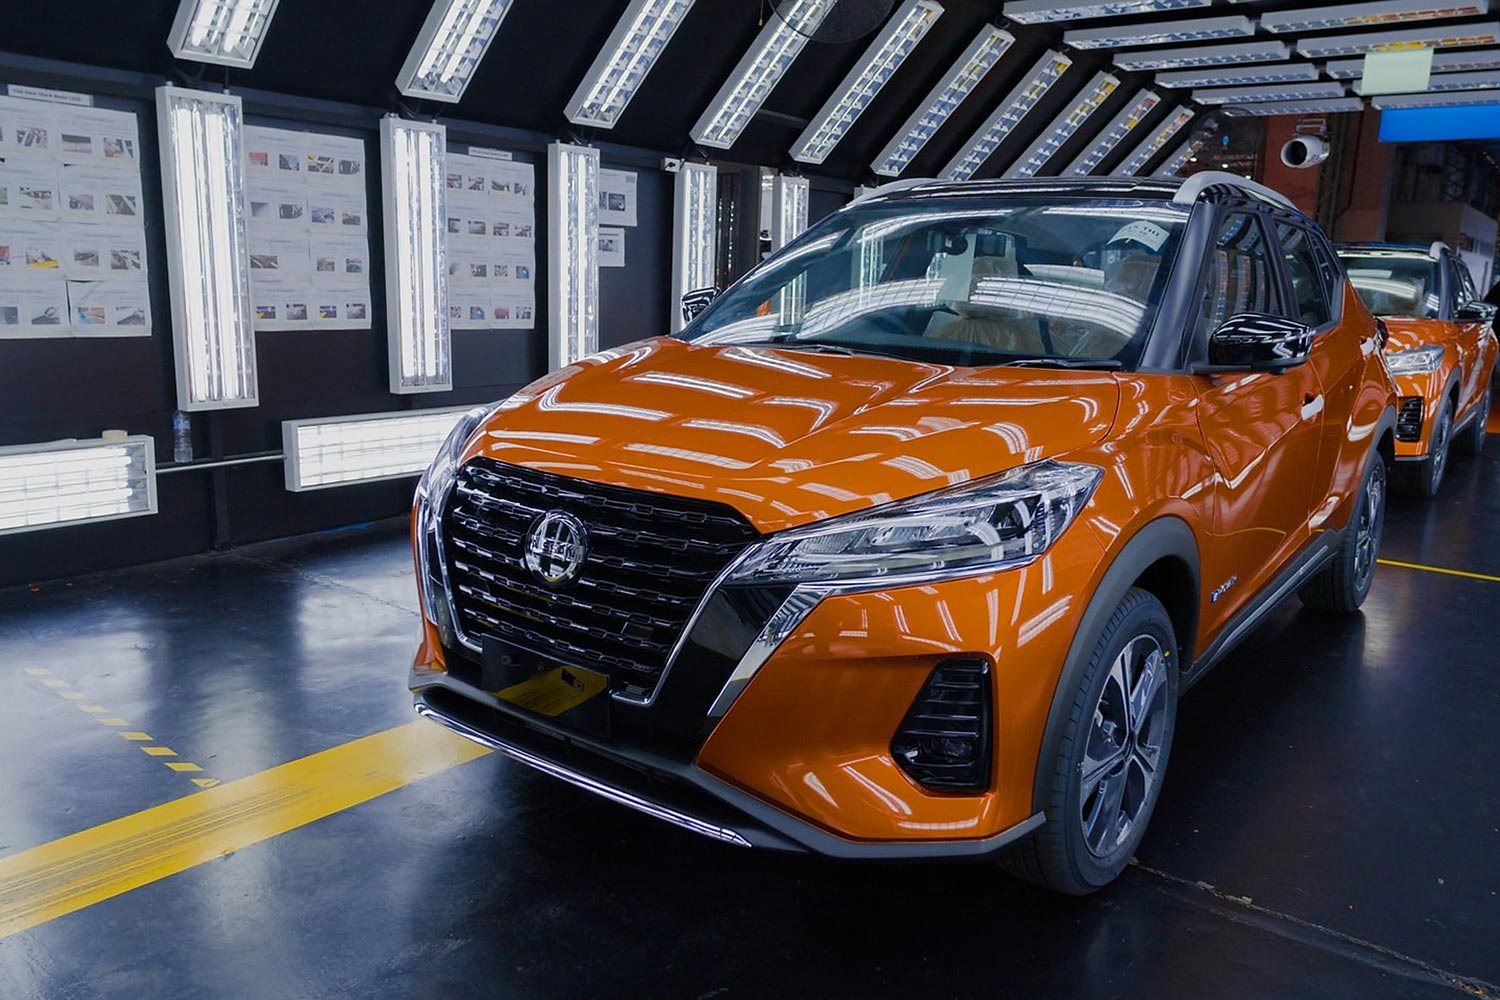 Nissan is expanding its production in Thailand for popular models like the Kicks e-Power SUV.